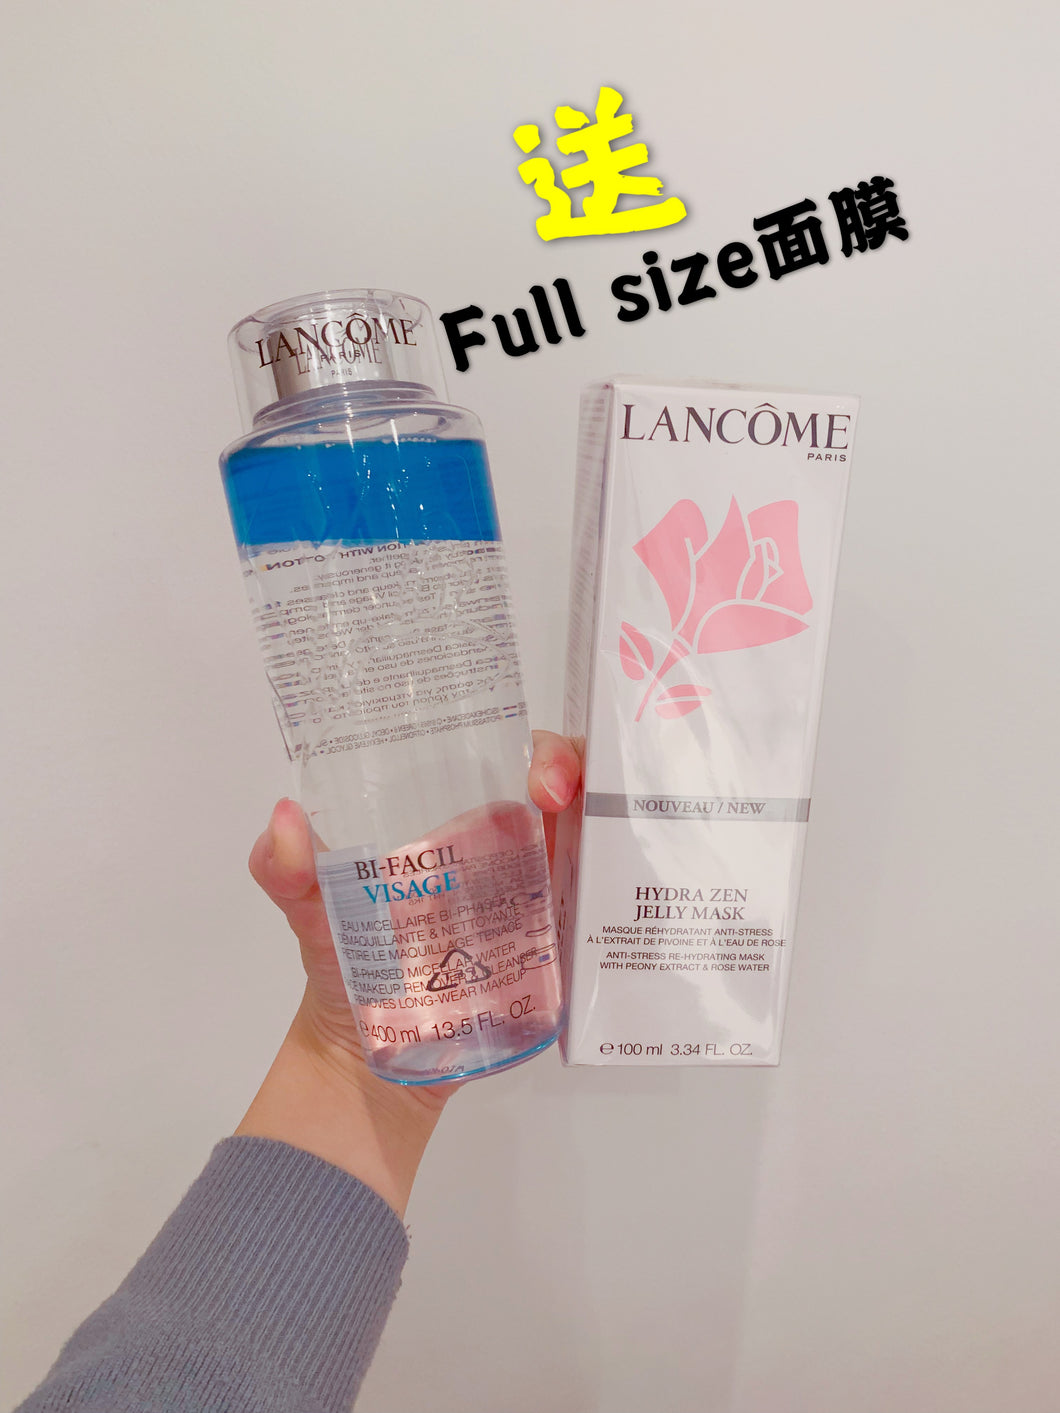 Lancôme Lancome BI-FACIL 高效面部卸妝水400ML - buy European skincare in Hong Kong - 1click2beauty